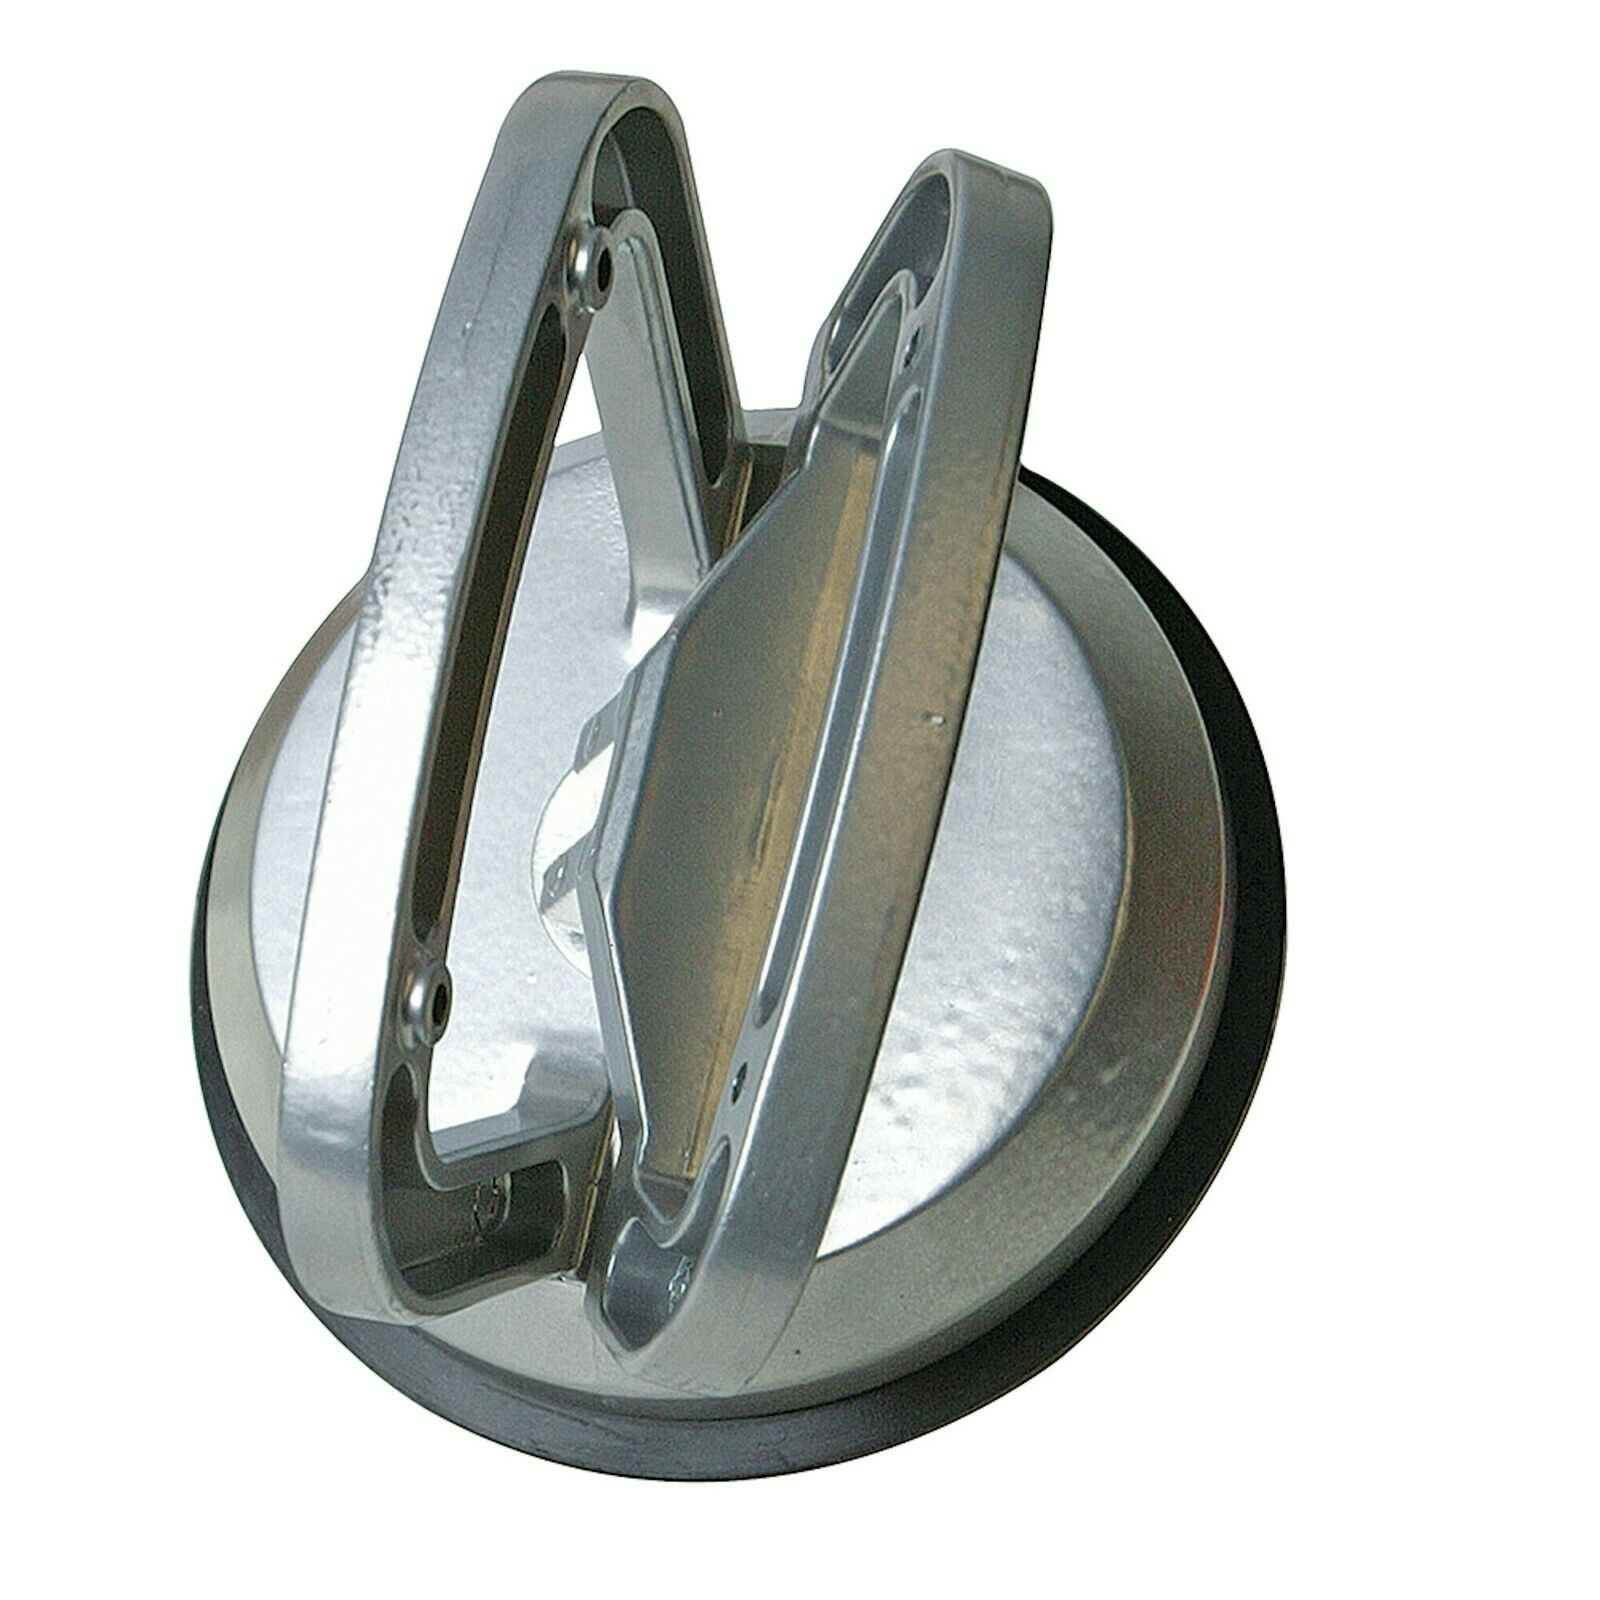 4x Suction Cup Pad Aluminium Heavy Duty 50kg Glass Lifter Carry Car Dent Puller